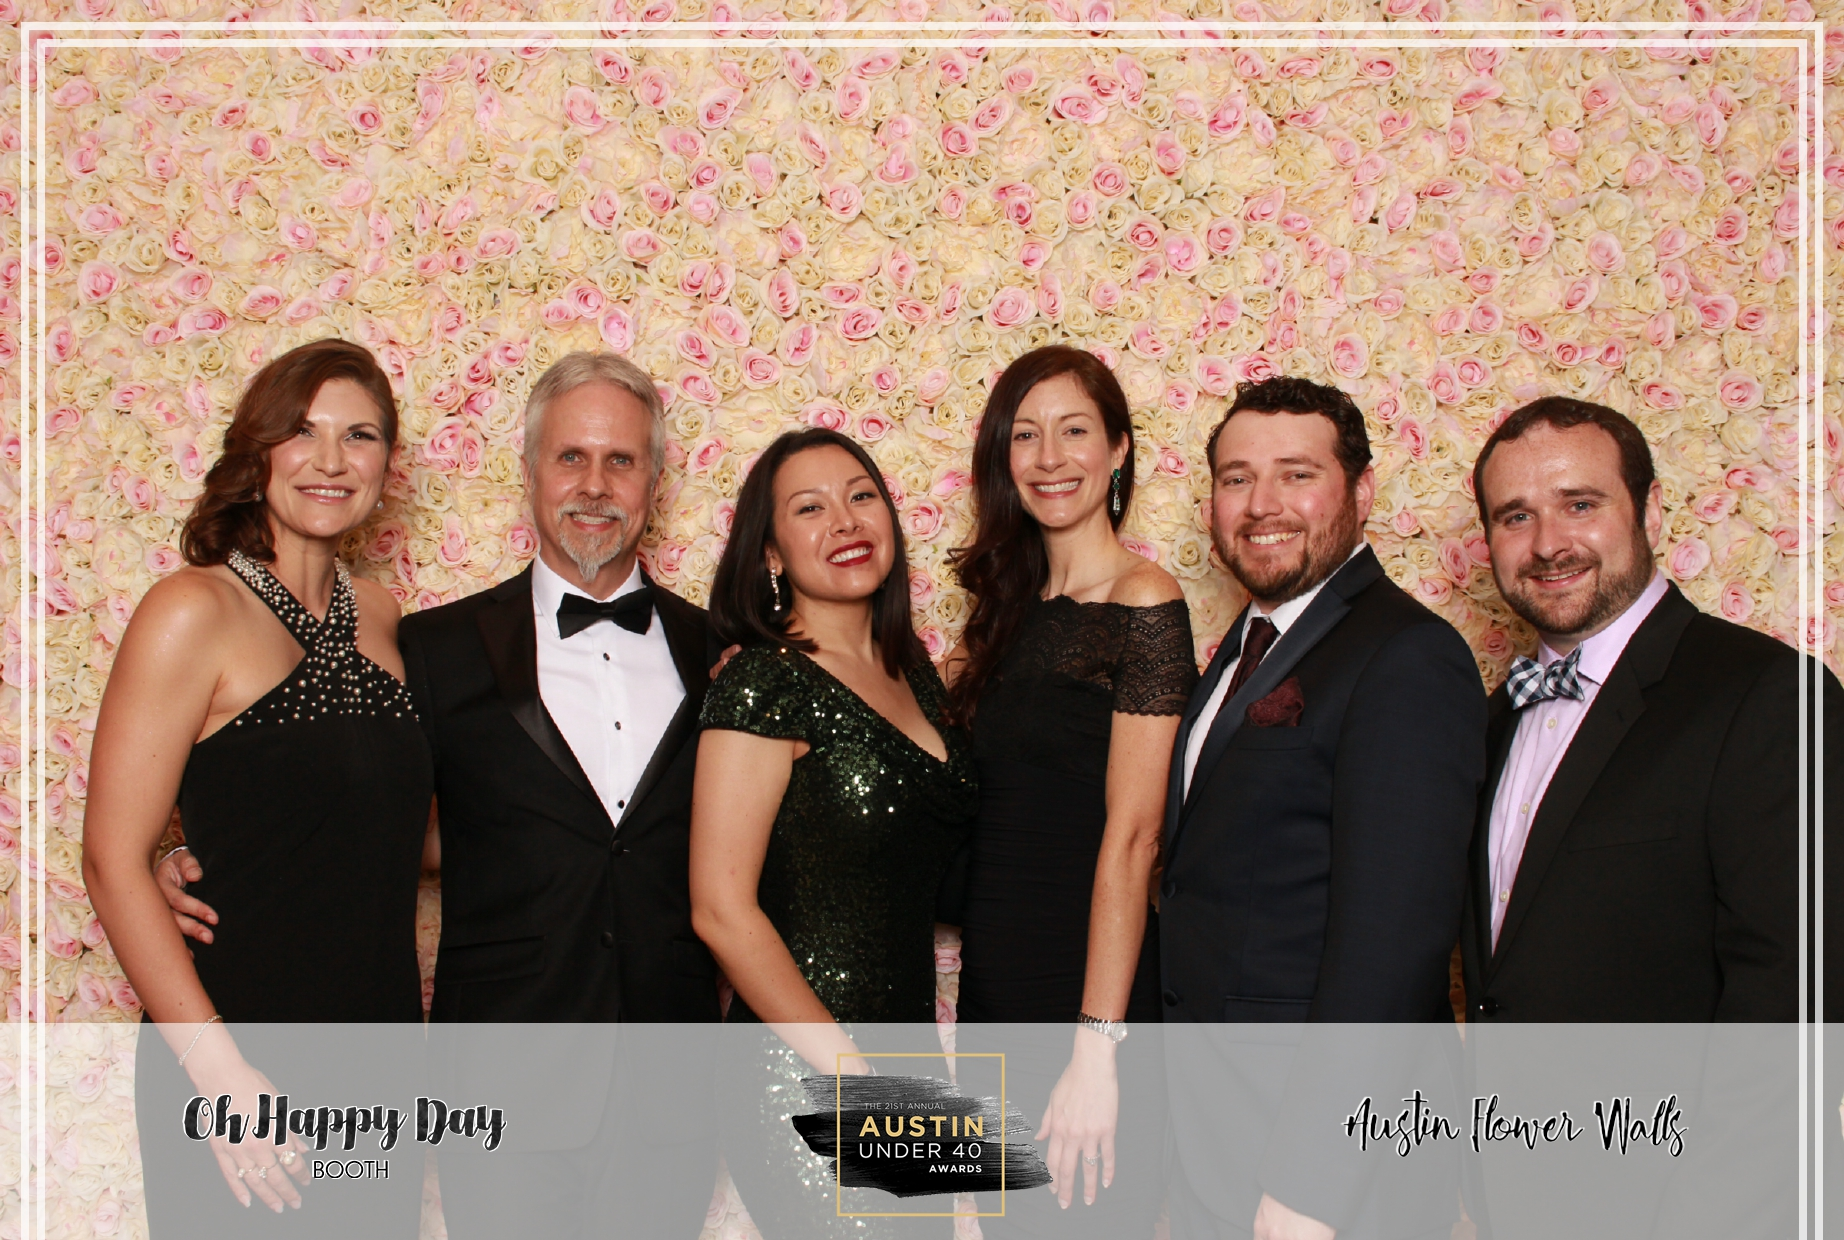 Oh Happy Day Booth - Austin Under 40-173.jpg